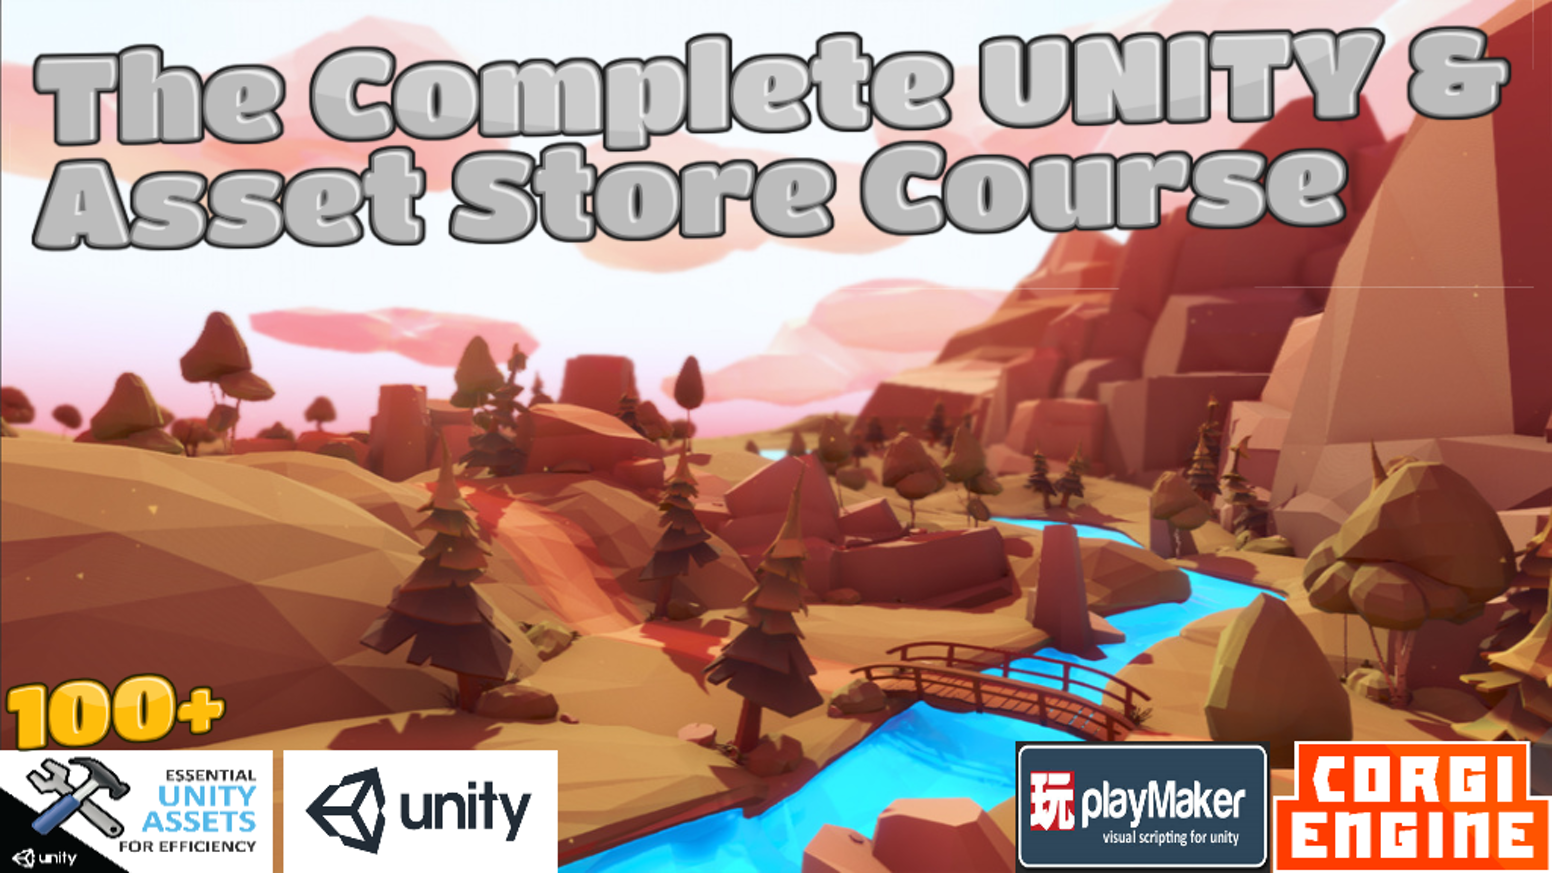 The Complete UNITY and Asset Store Game Developer Course by